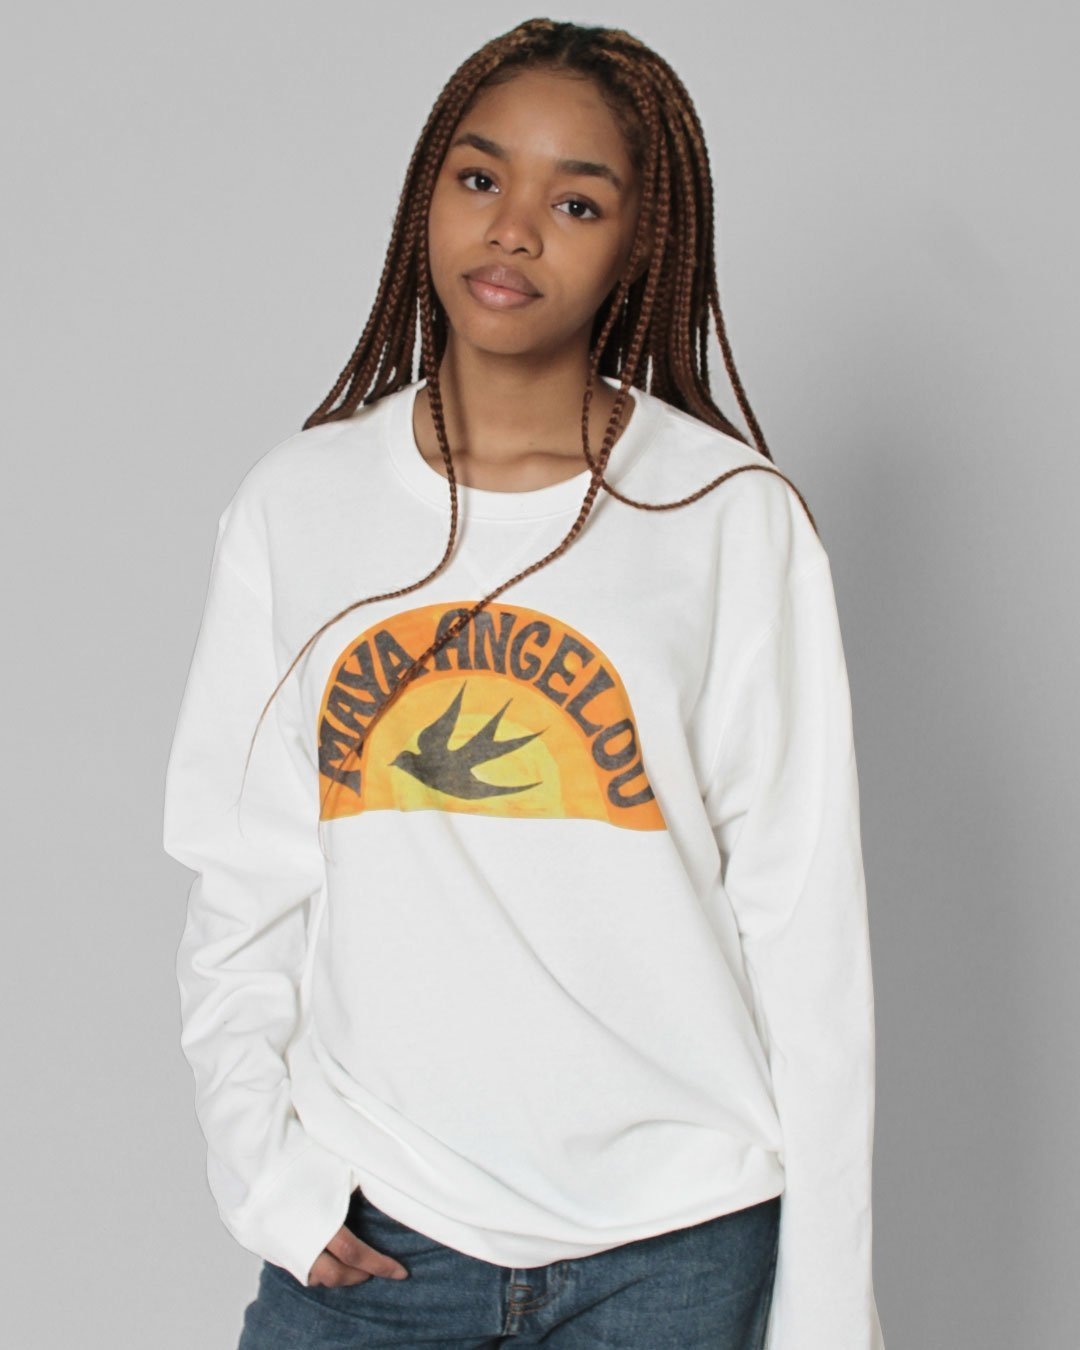 Maya Angelou Bird Sweatshirt - Roots of Inc dba Roots of Fight